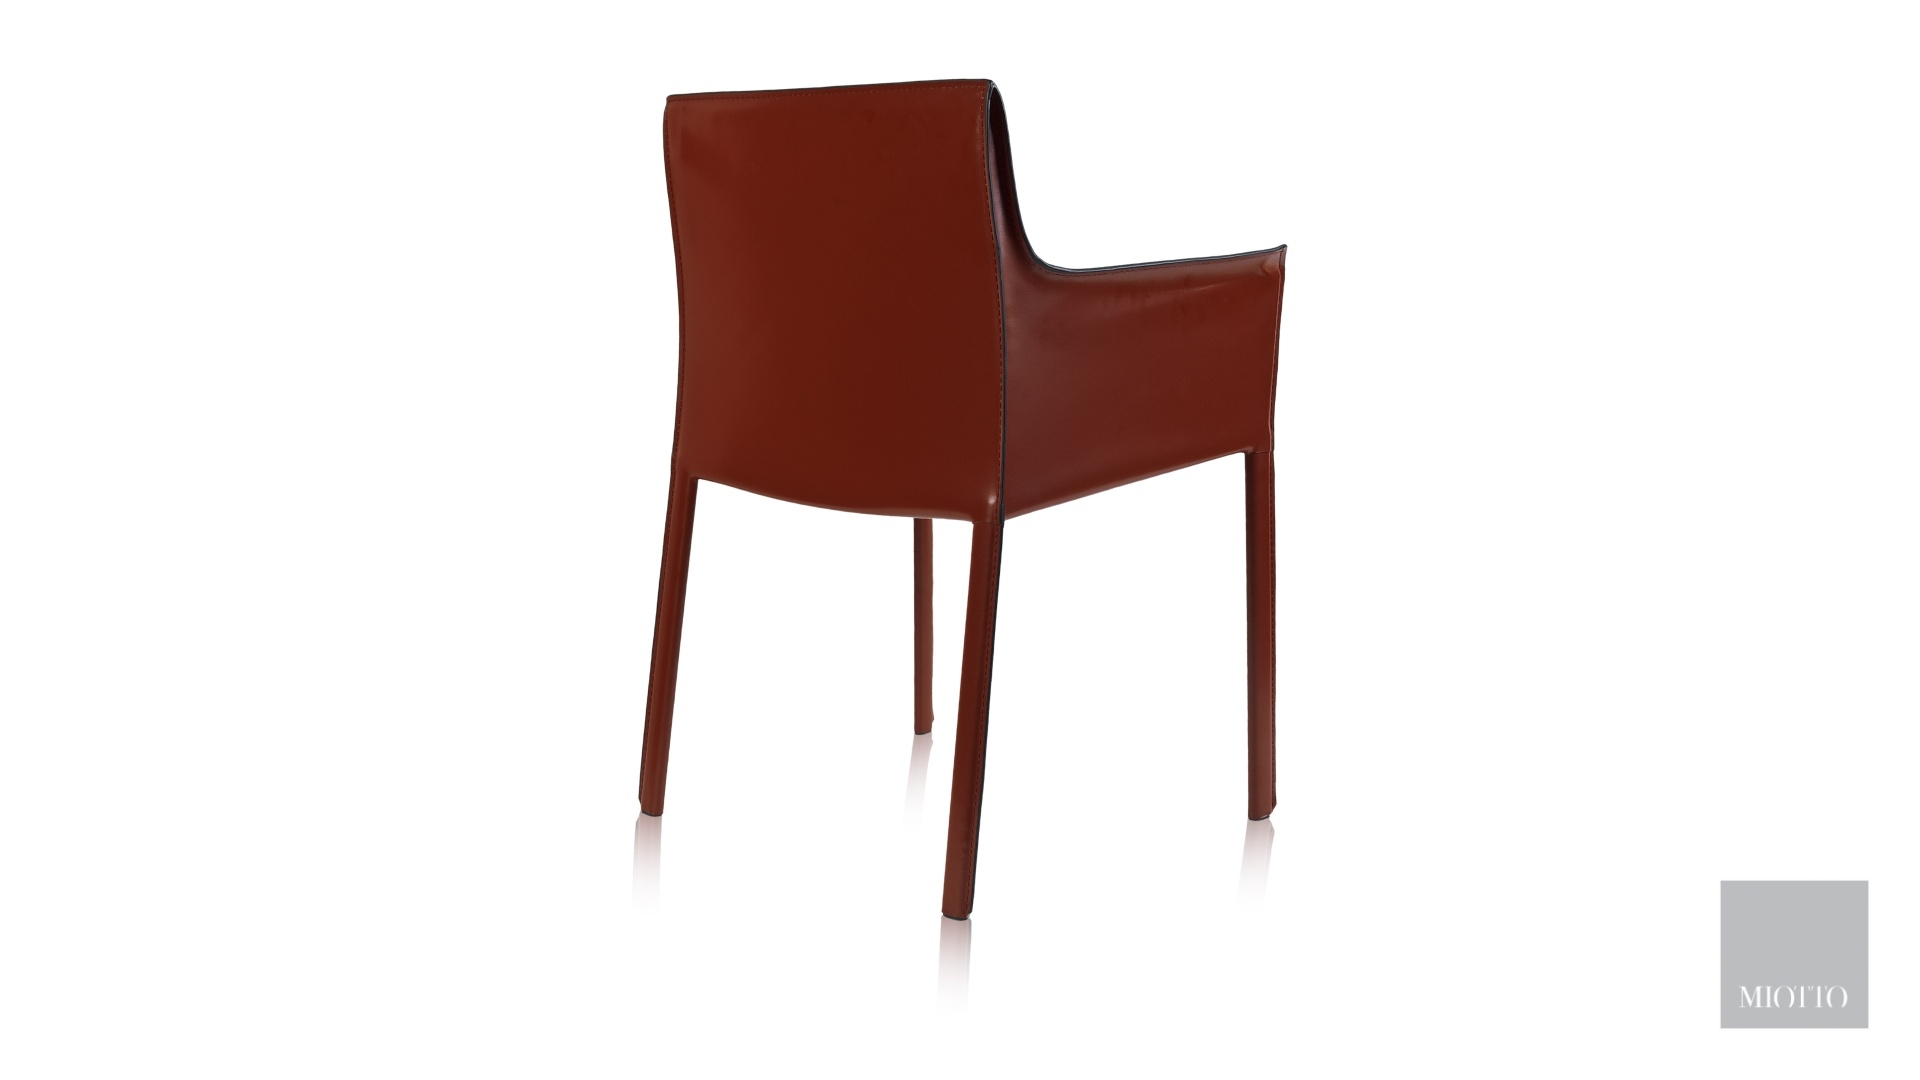 miotto_Ardini arm dining chair burgundy miotto furniture back t